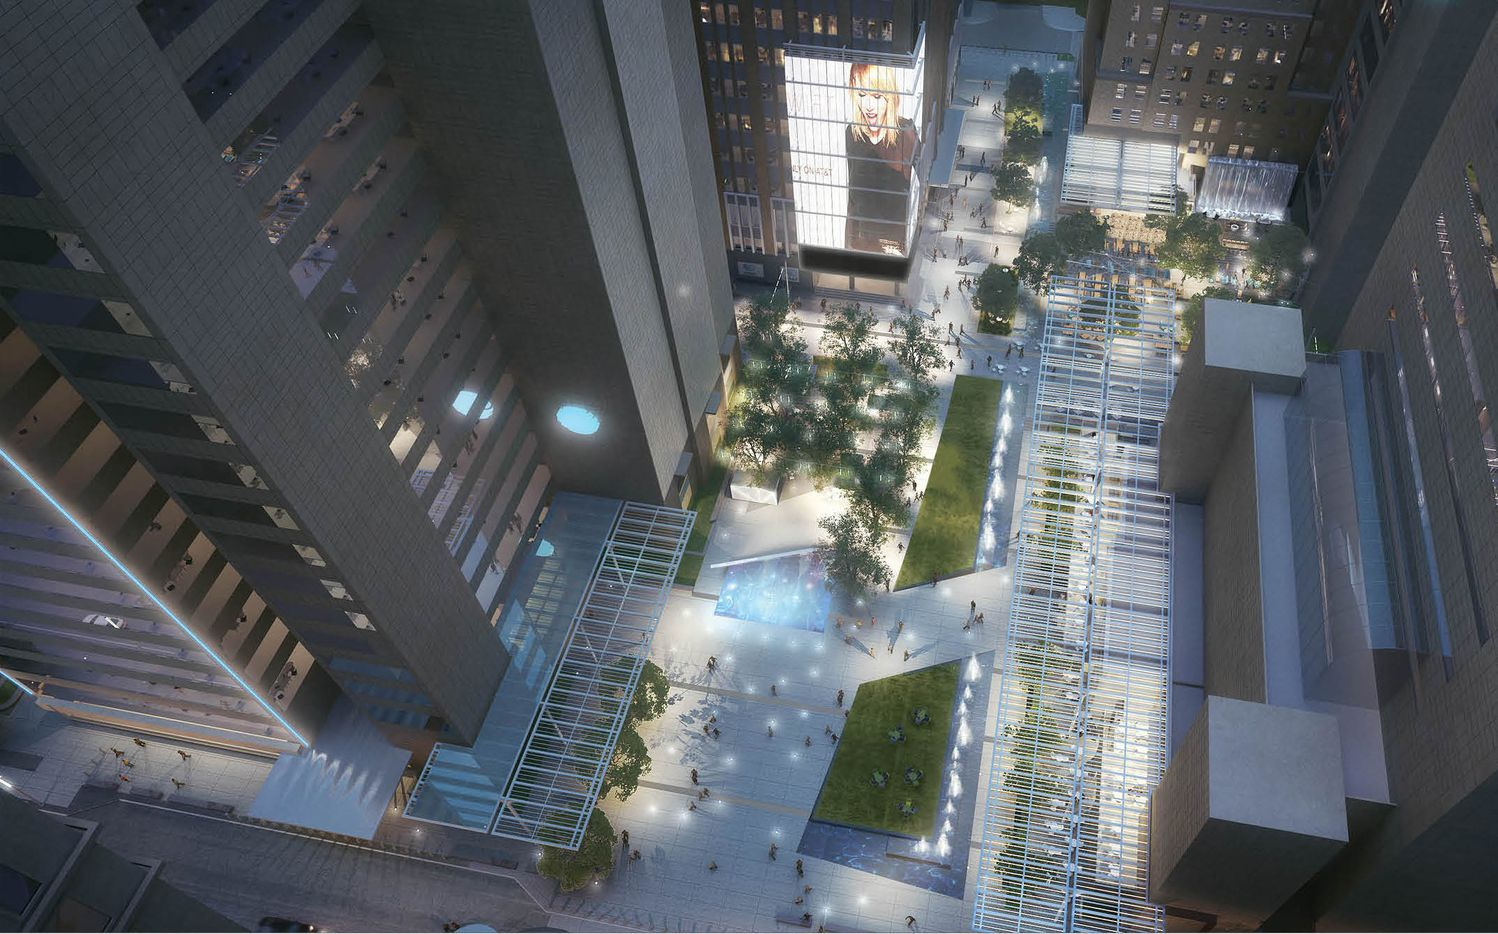 AT&T's new downtown Discovery District will open in late 2019 at Commerce and Akard streets.